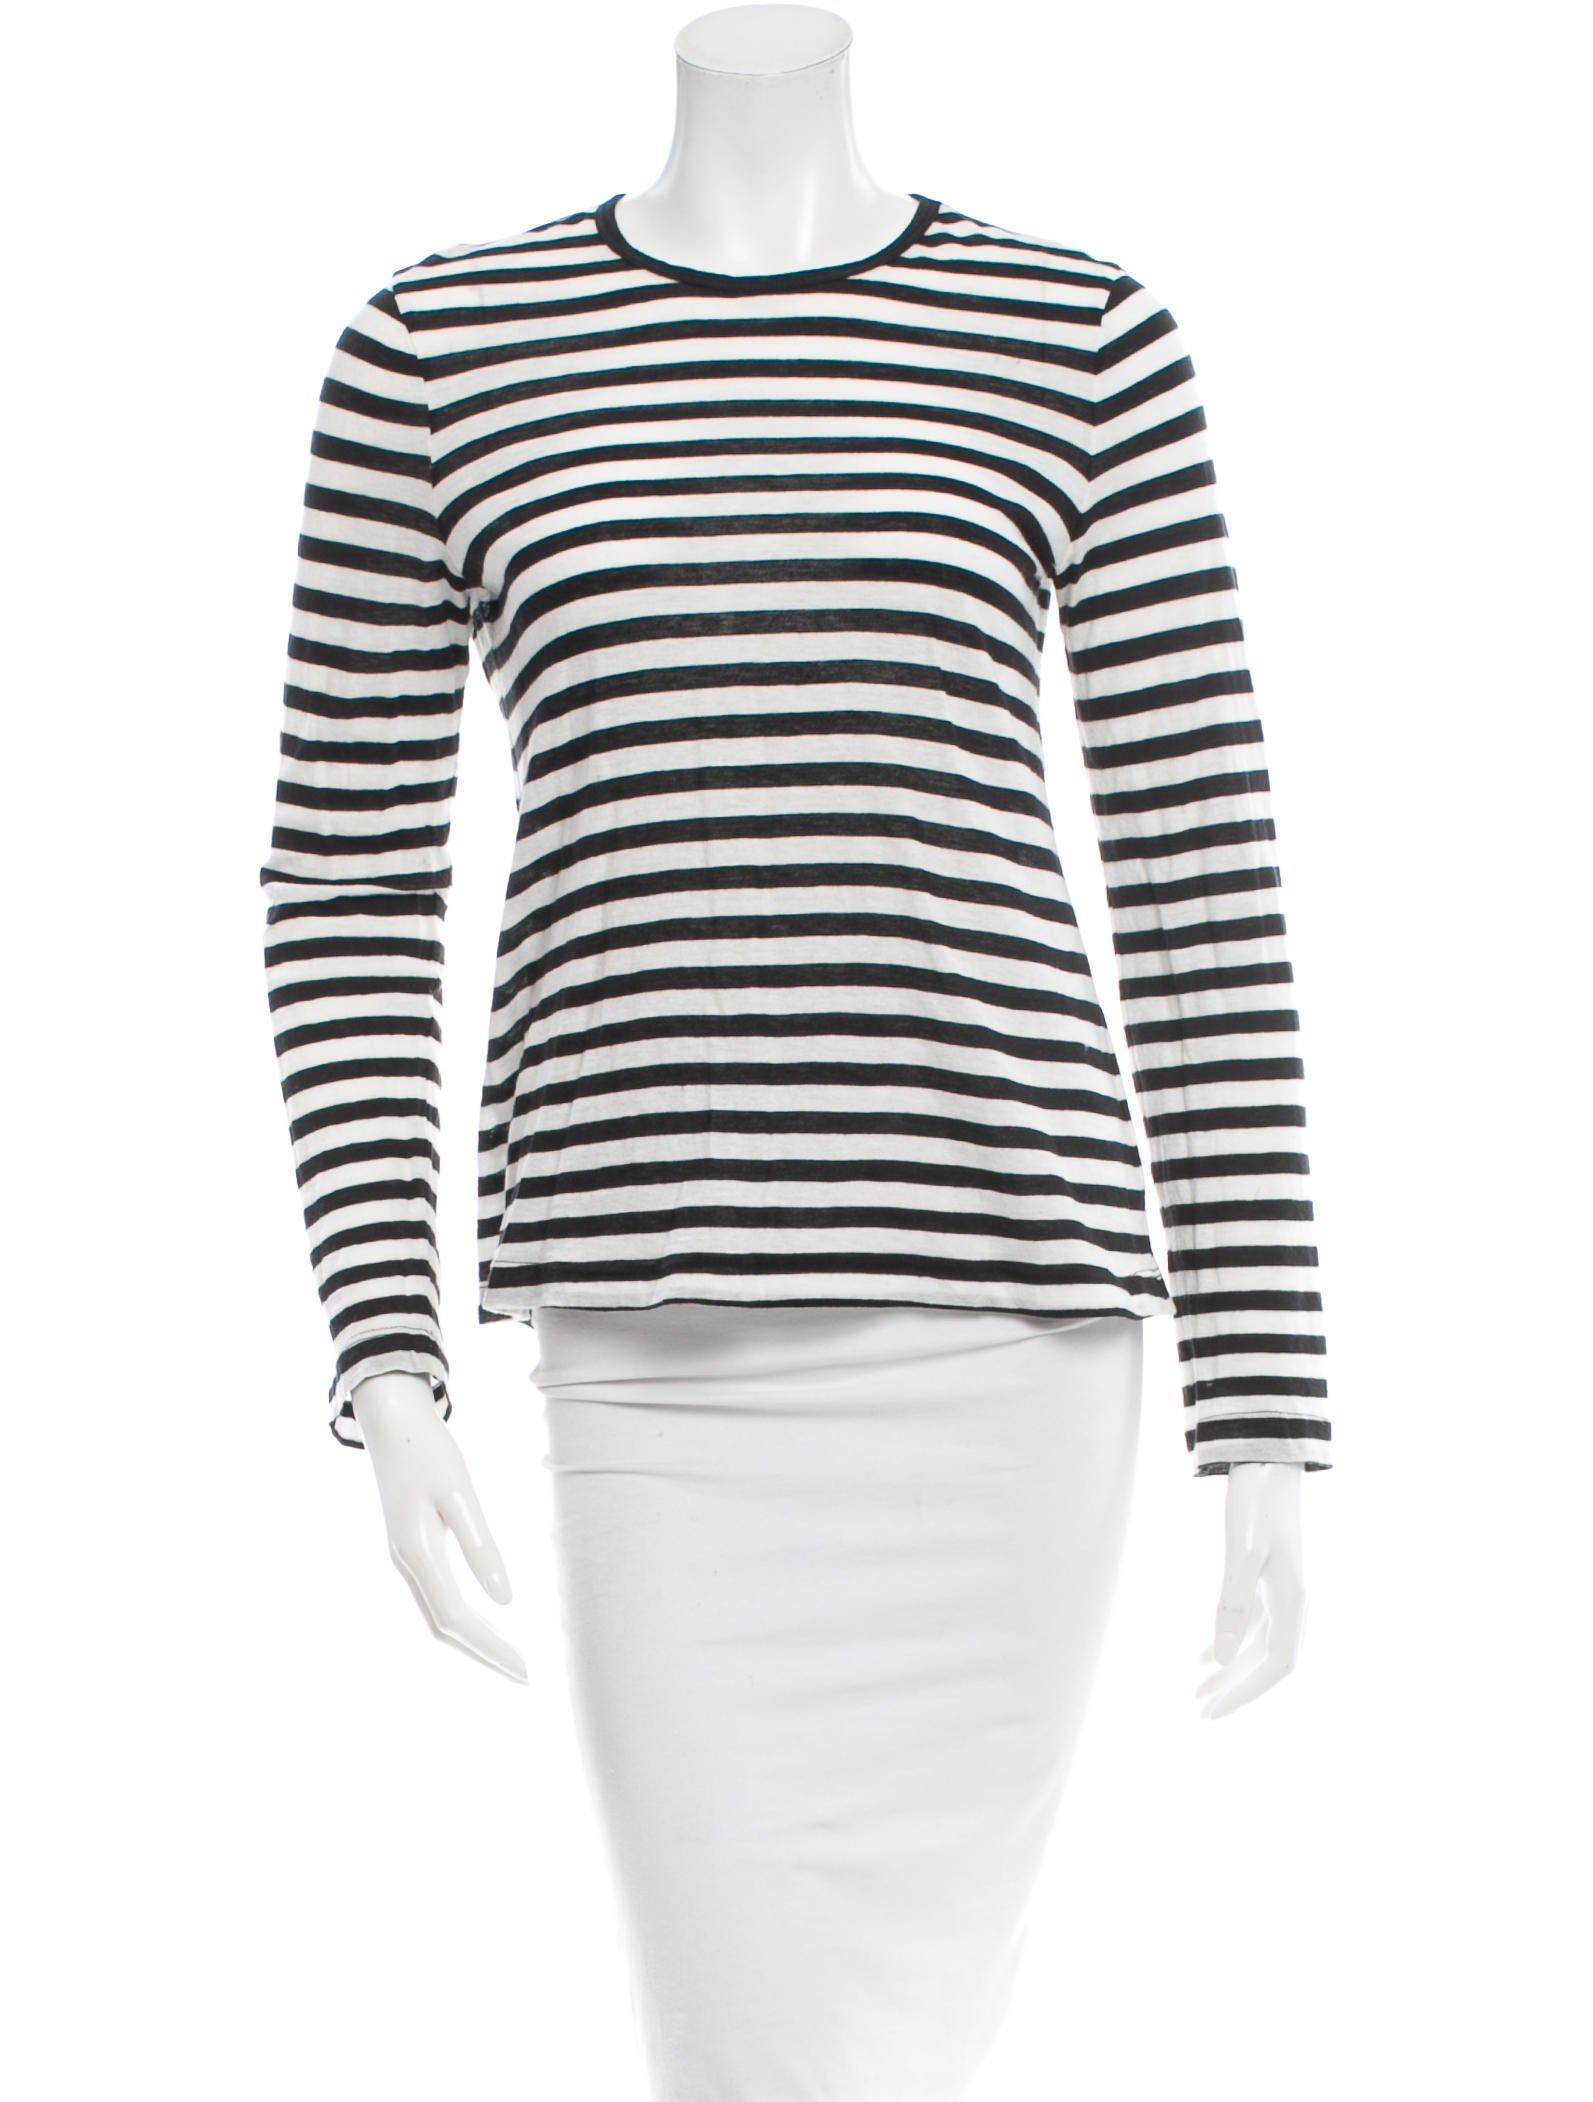 A l c striped long sleeve t shirt tops wa427072 the Striped long sleeve t shirt